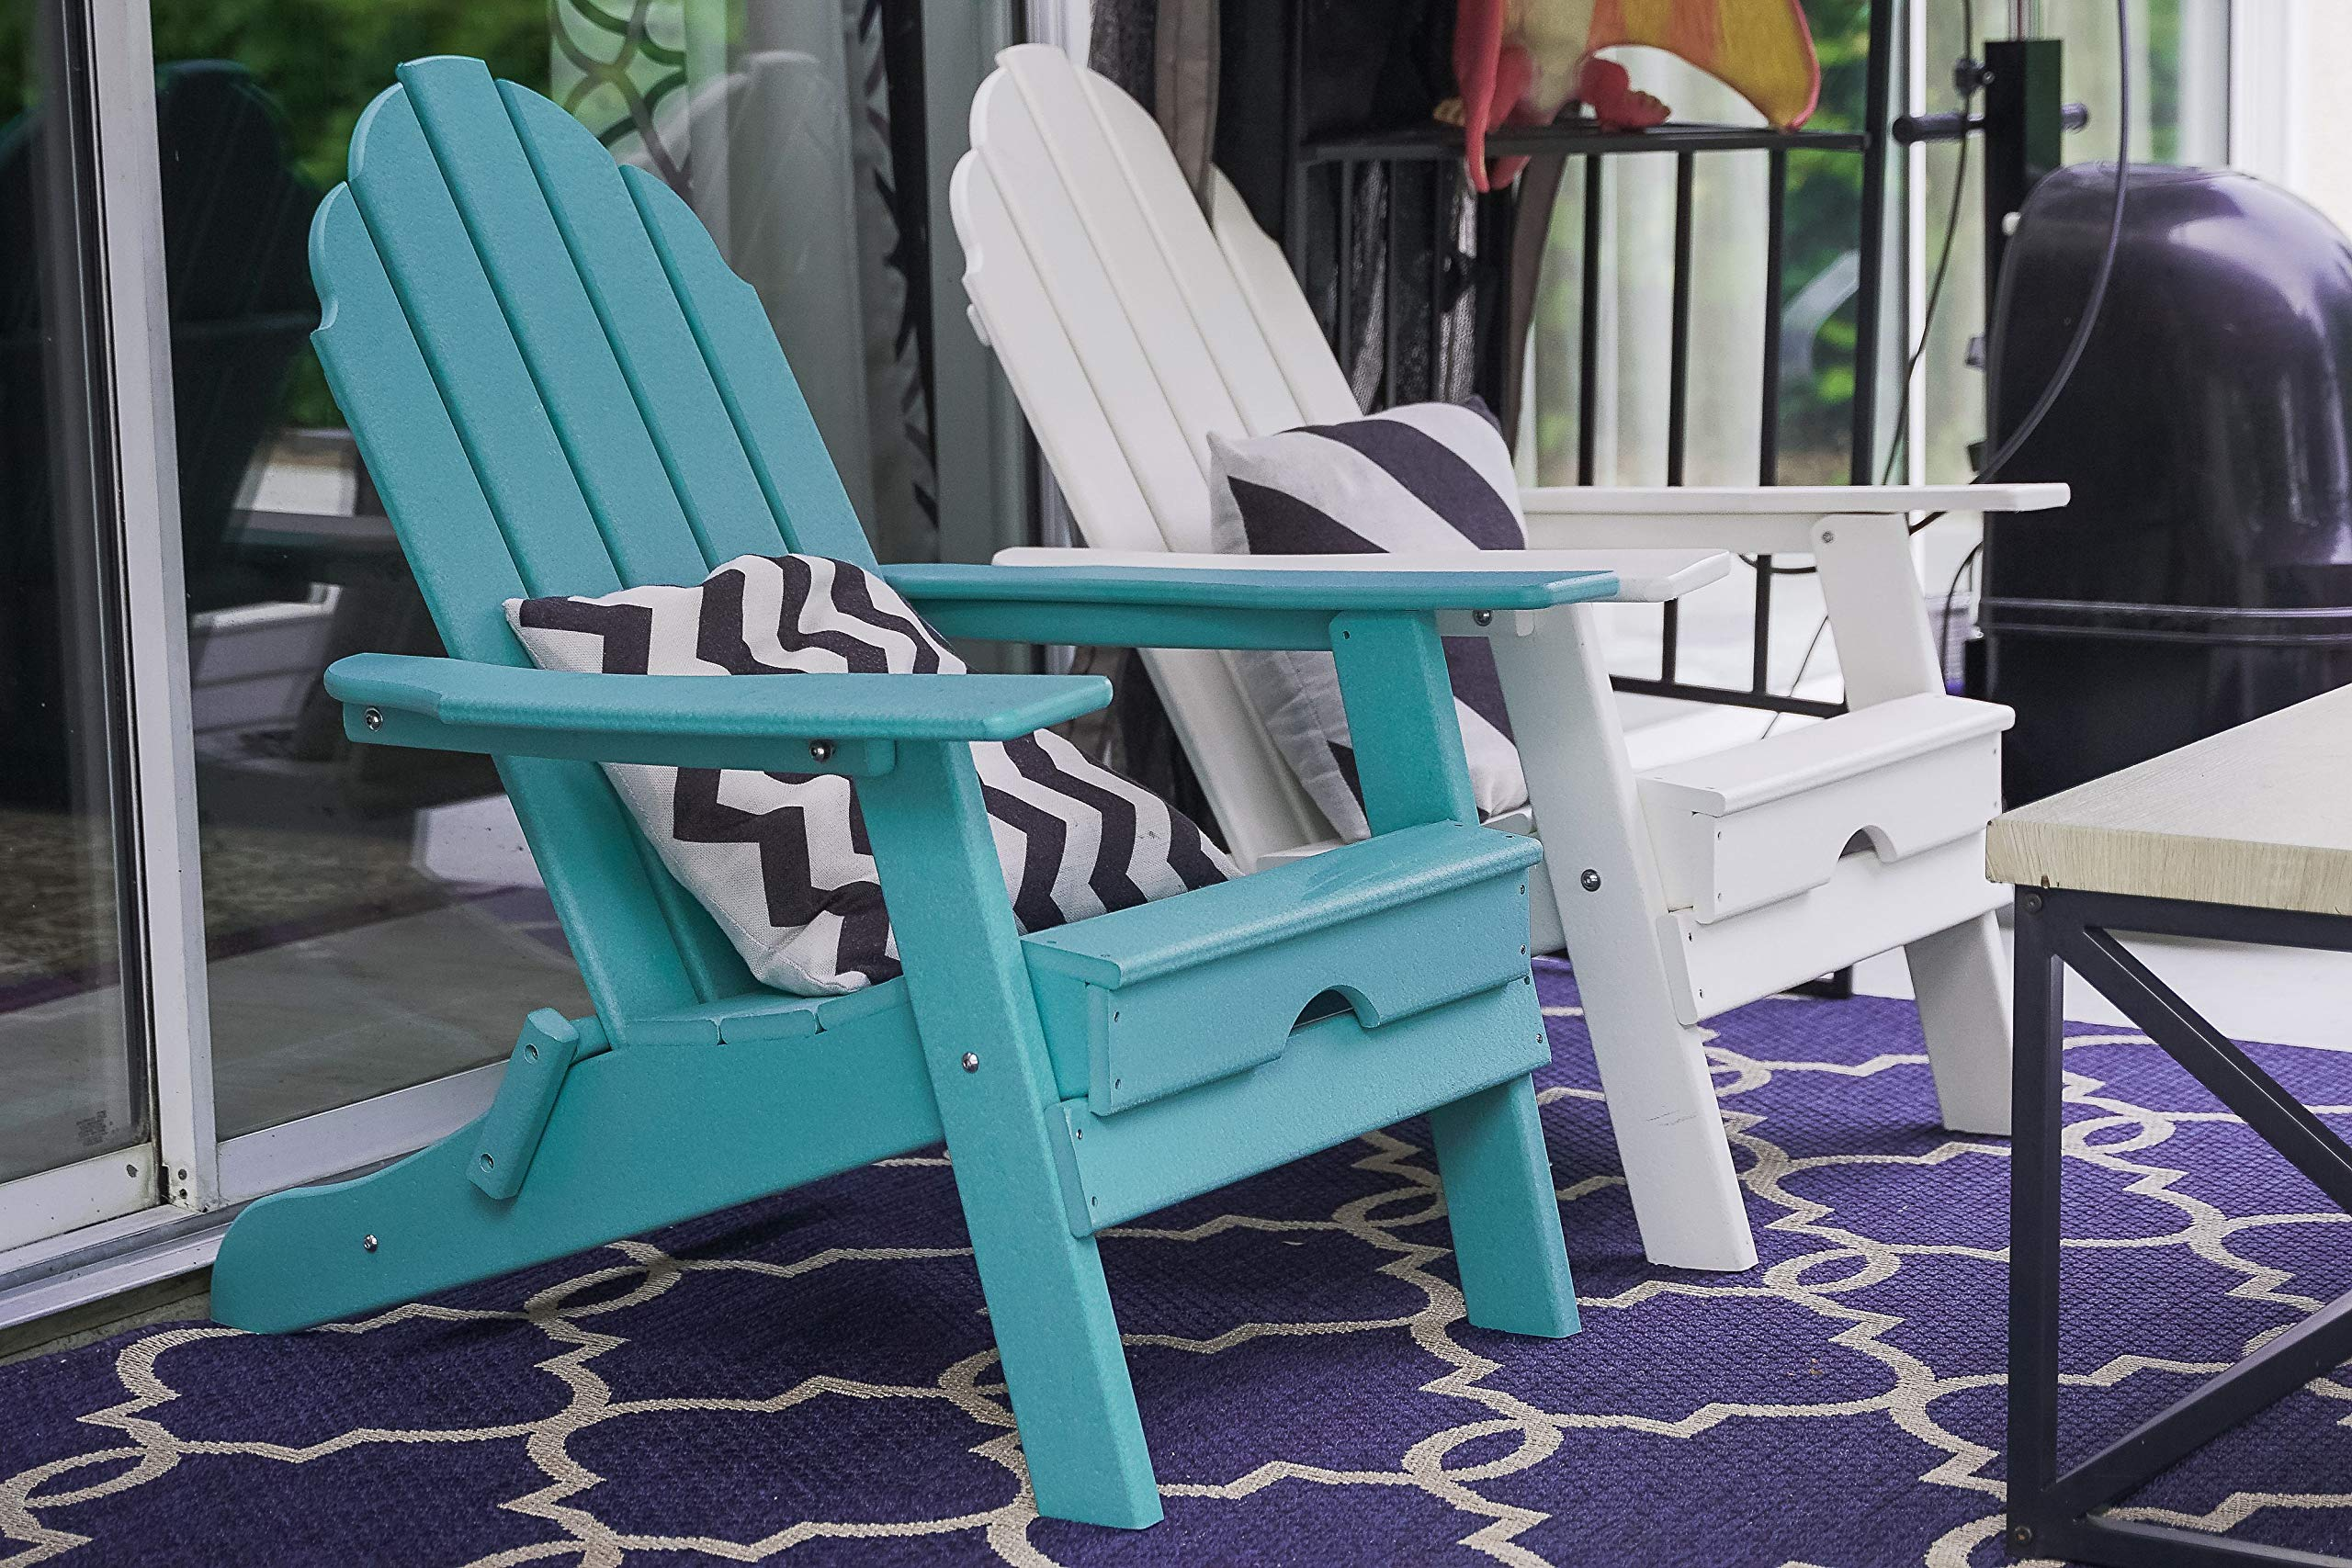 Foldable Polywood Weather Resistant Lawn and Garden Outdoor Adirondack Chair